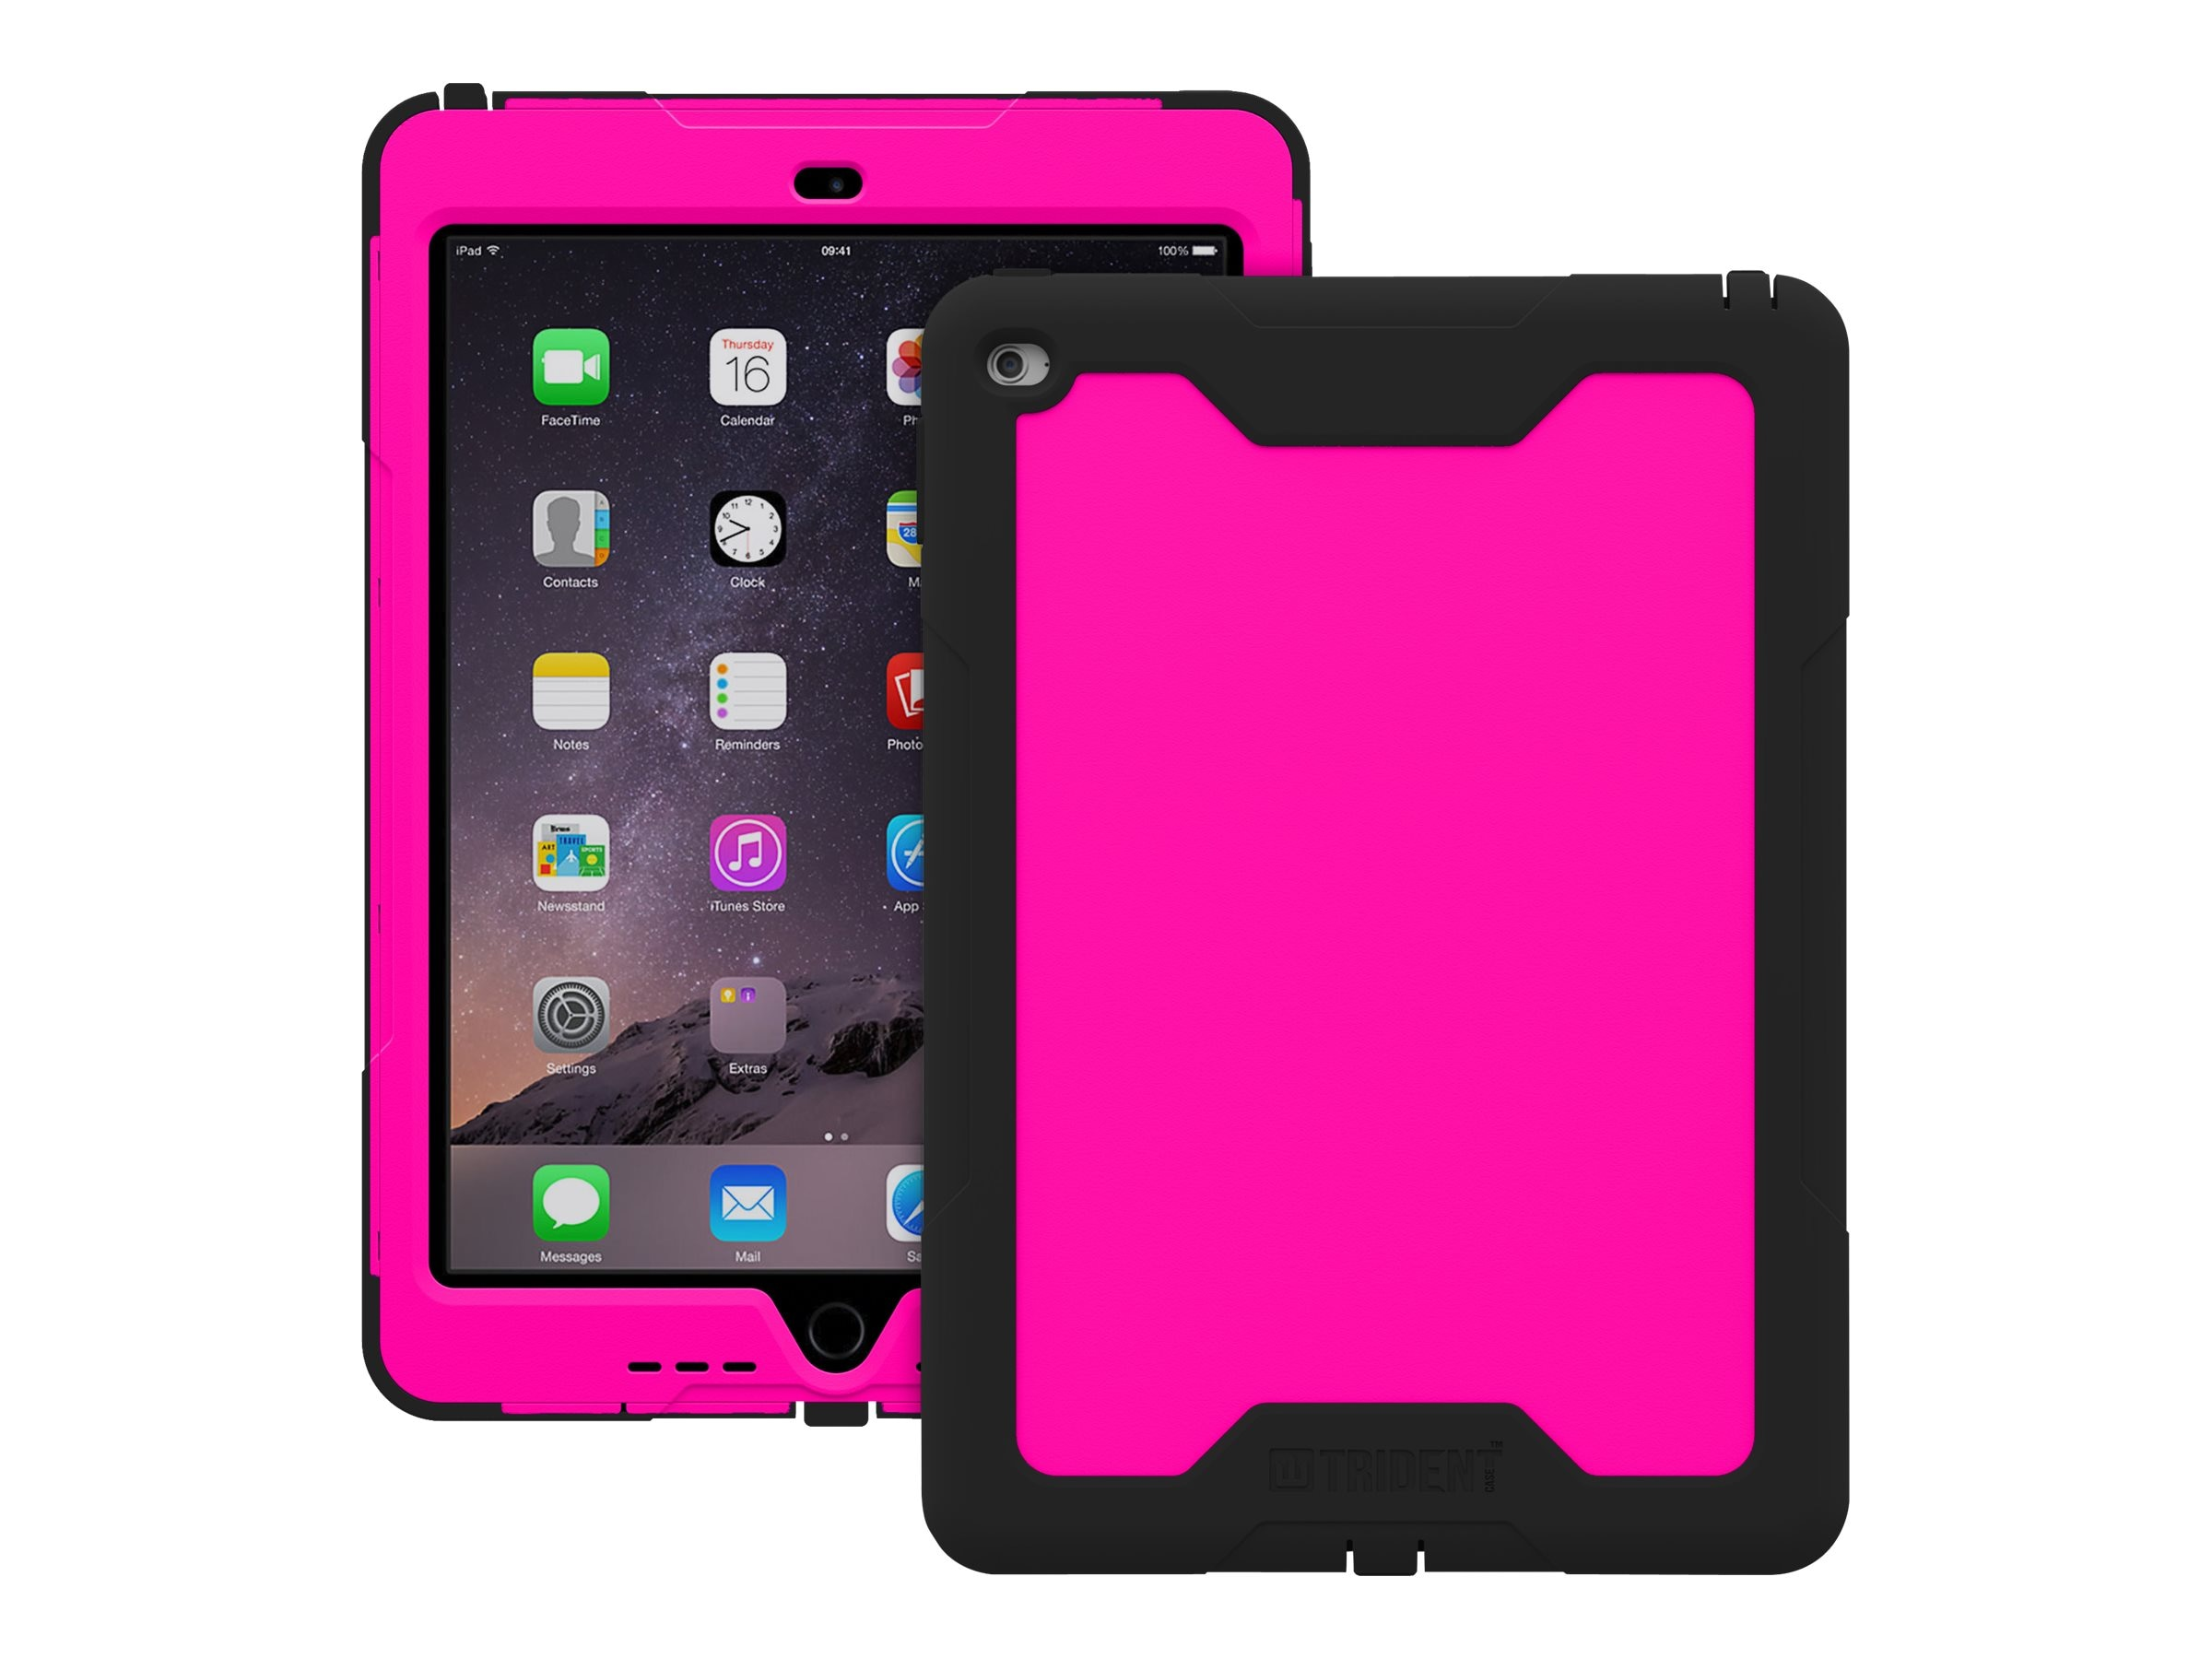 Trident Case 2015 Cyclops Case for iPad Air 2, Pink, CY-APIPA2-PK000, 19013688, Carrying Cases - Tablets & eReaders